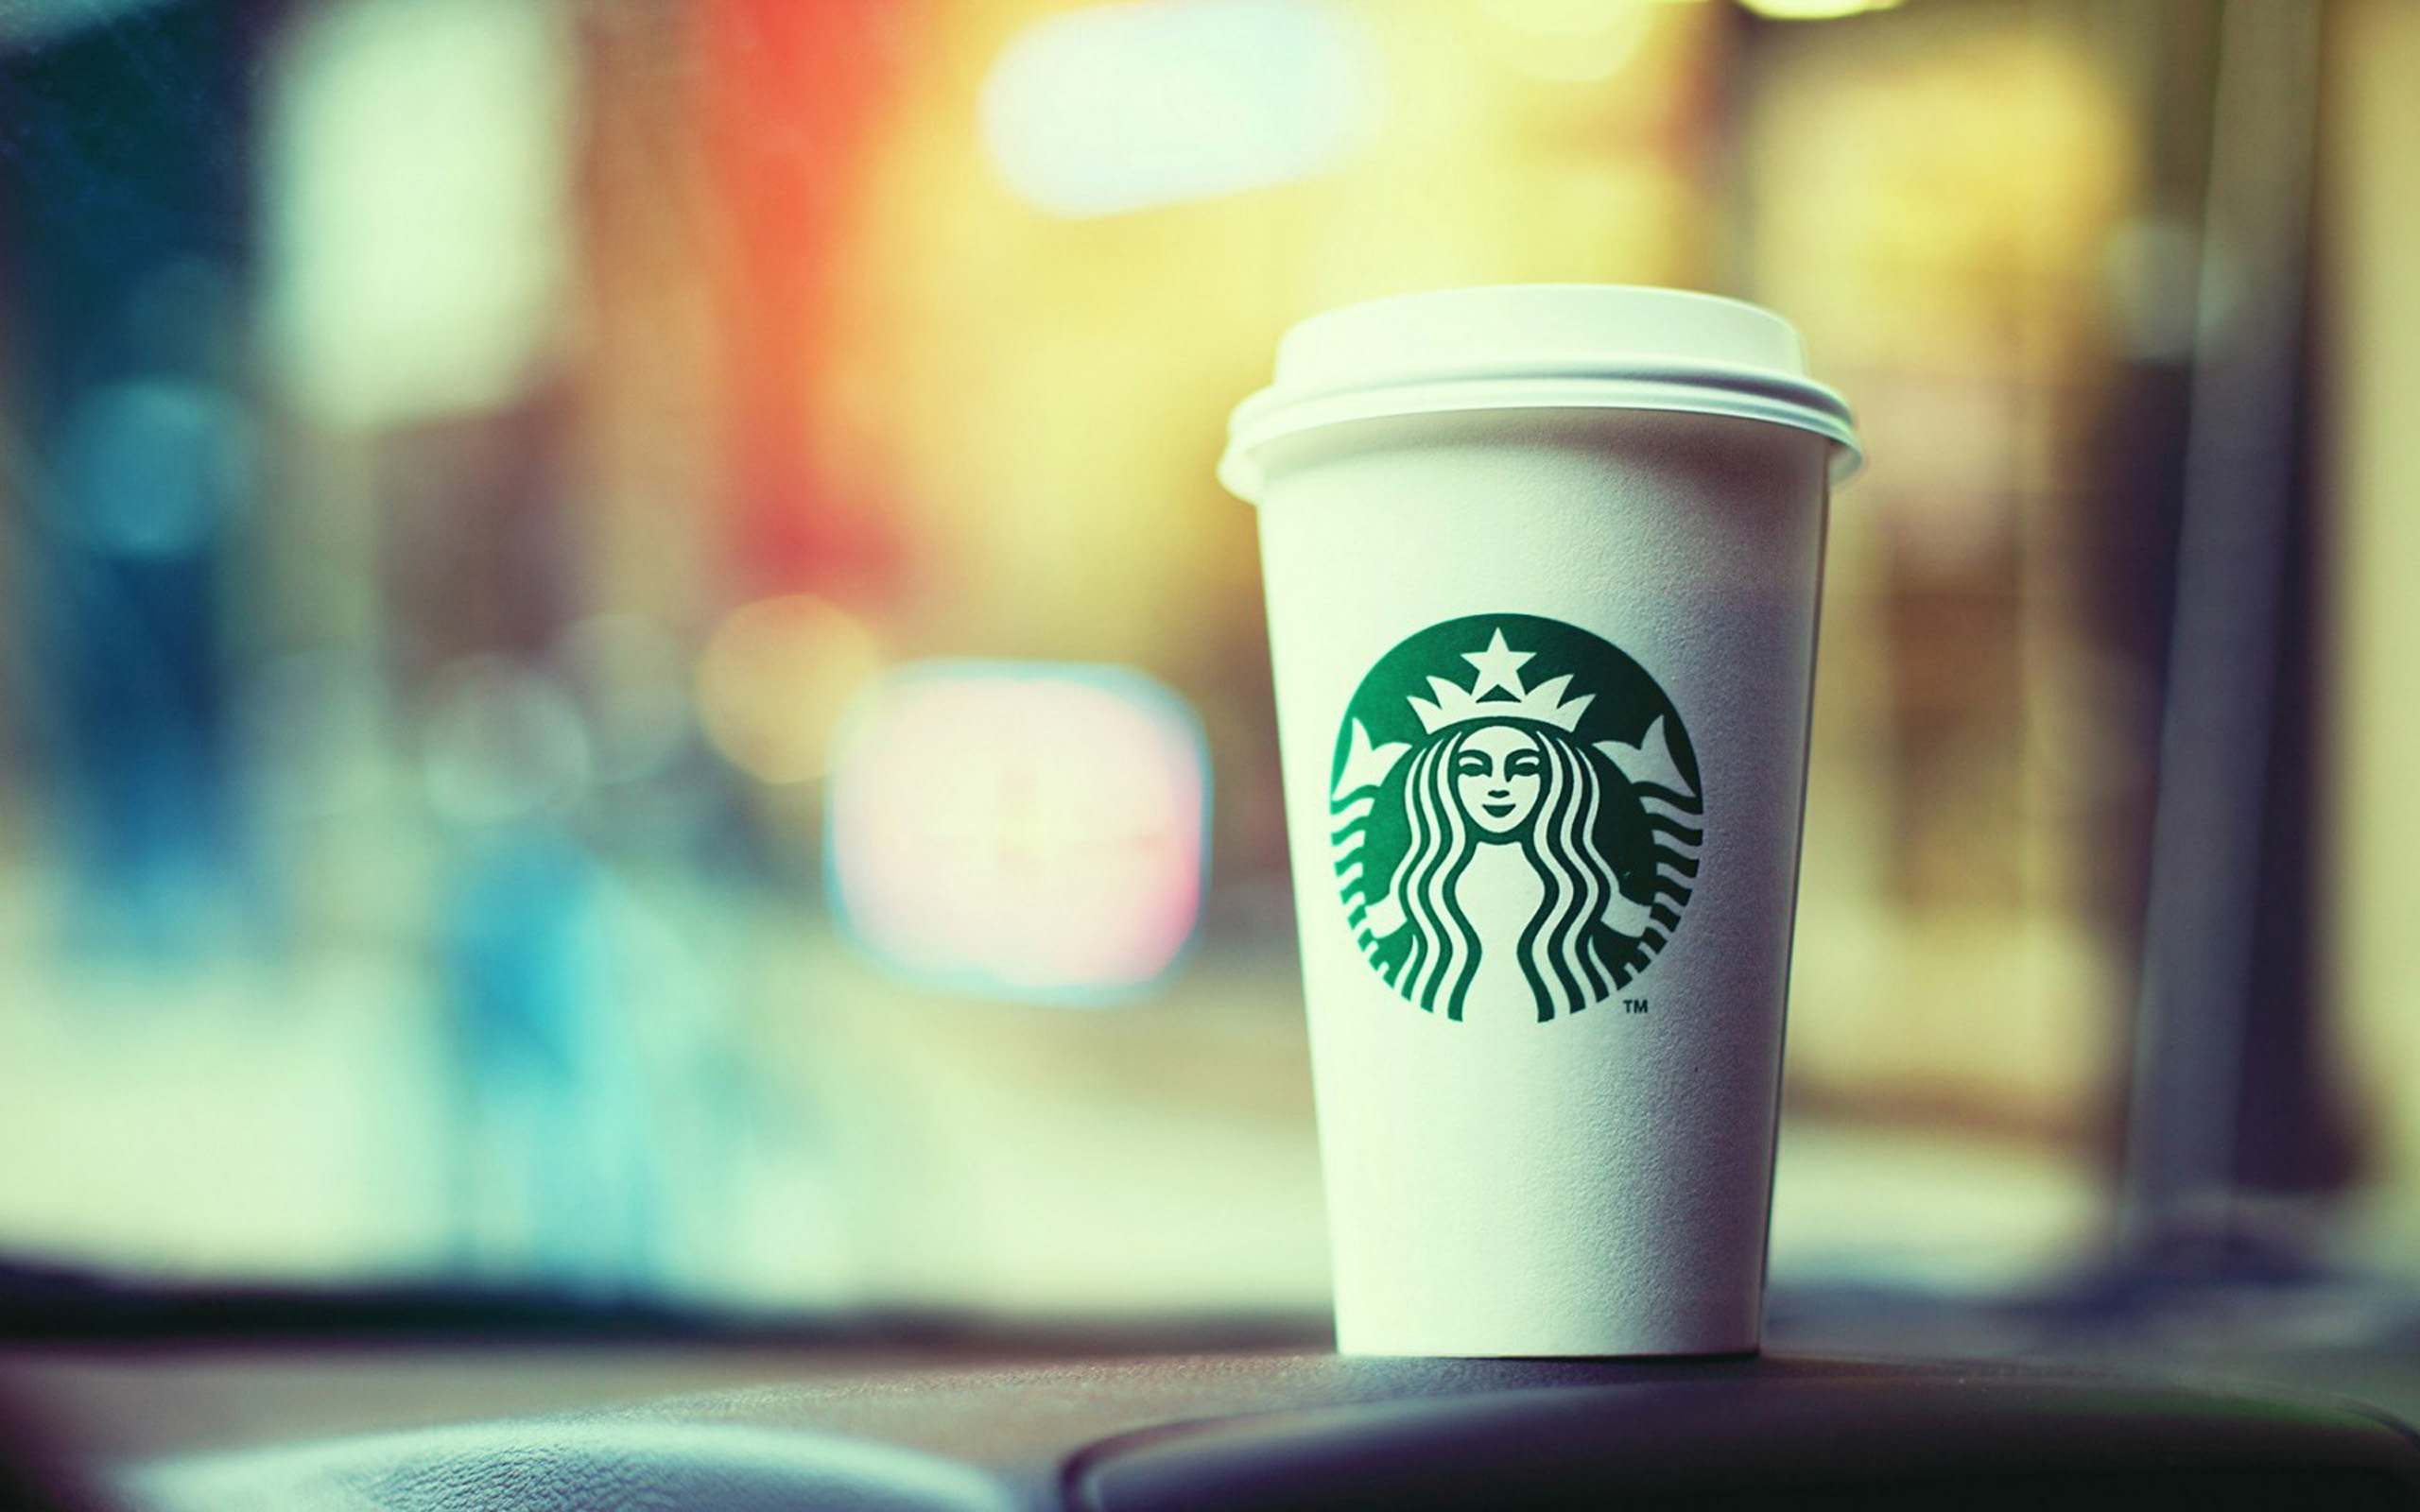 An open letter to Starbucks, from an Italian coffee lover